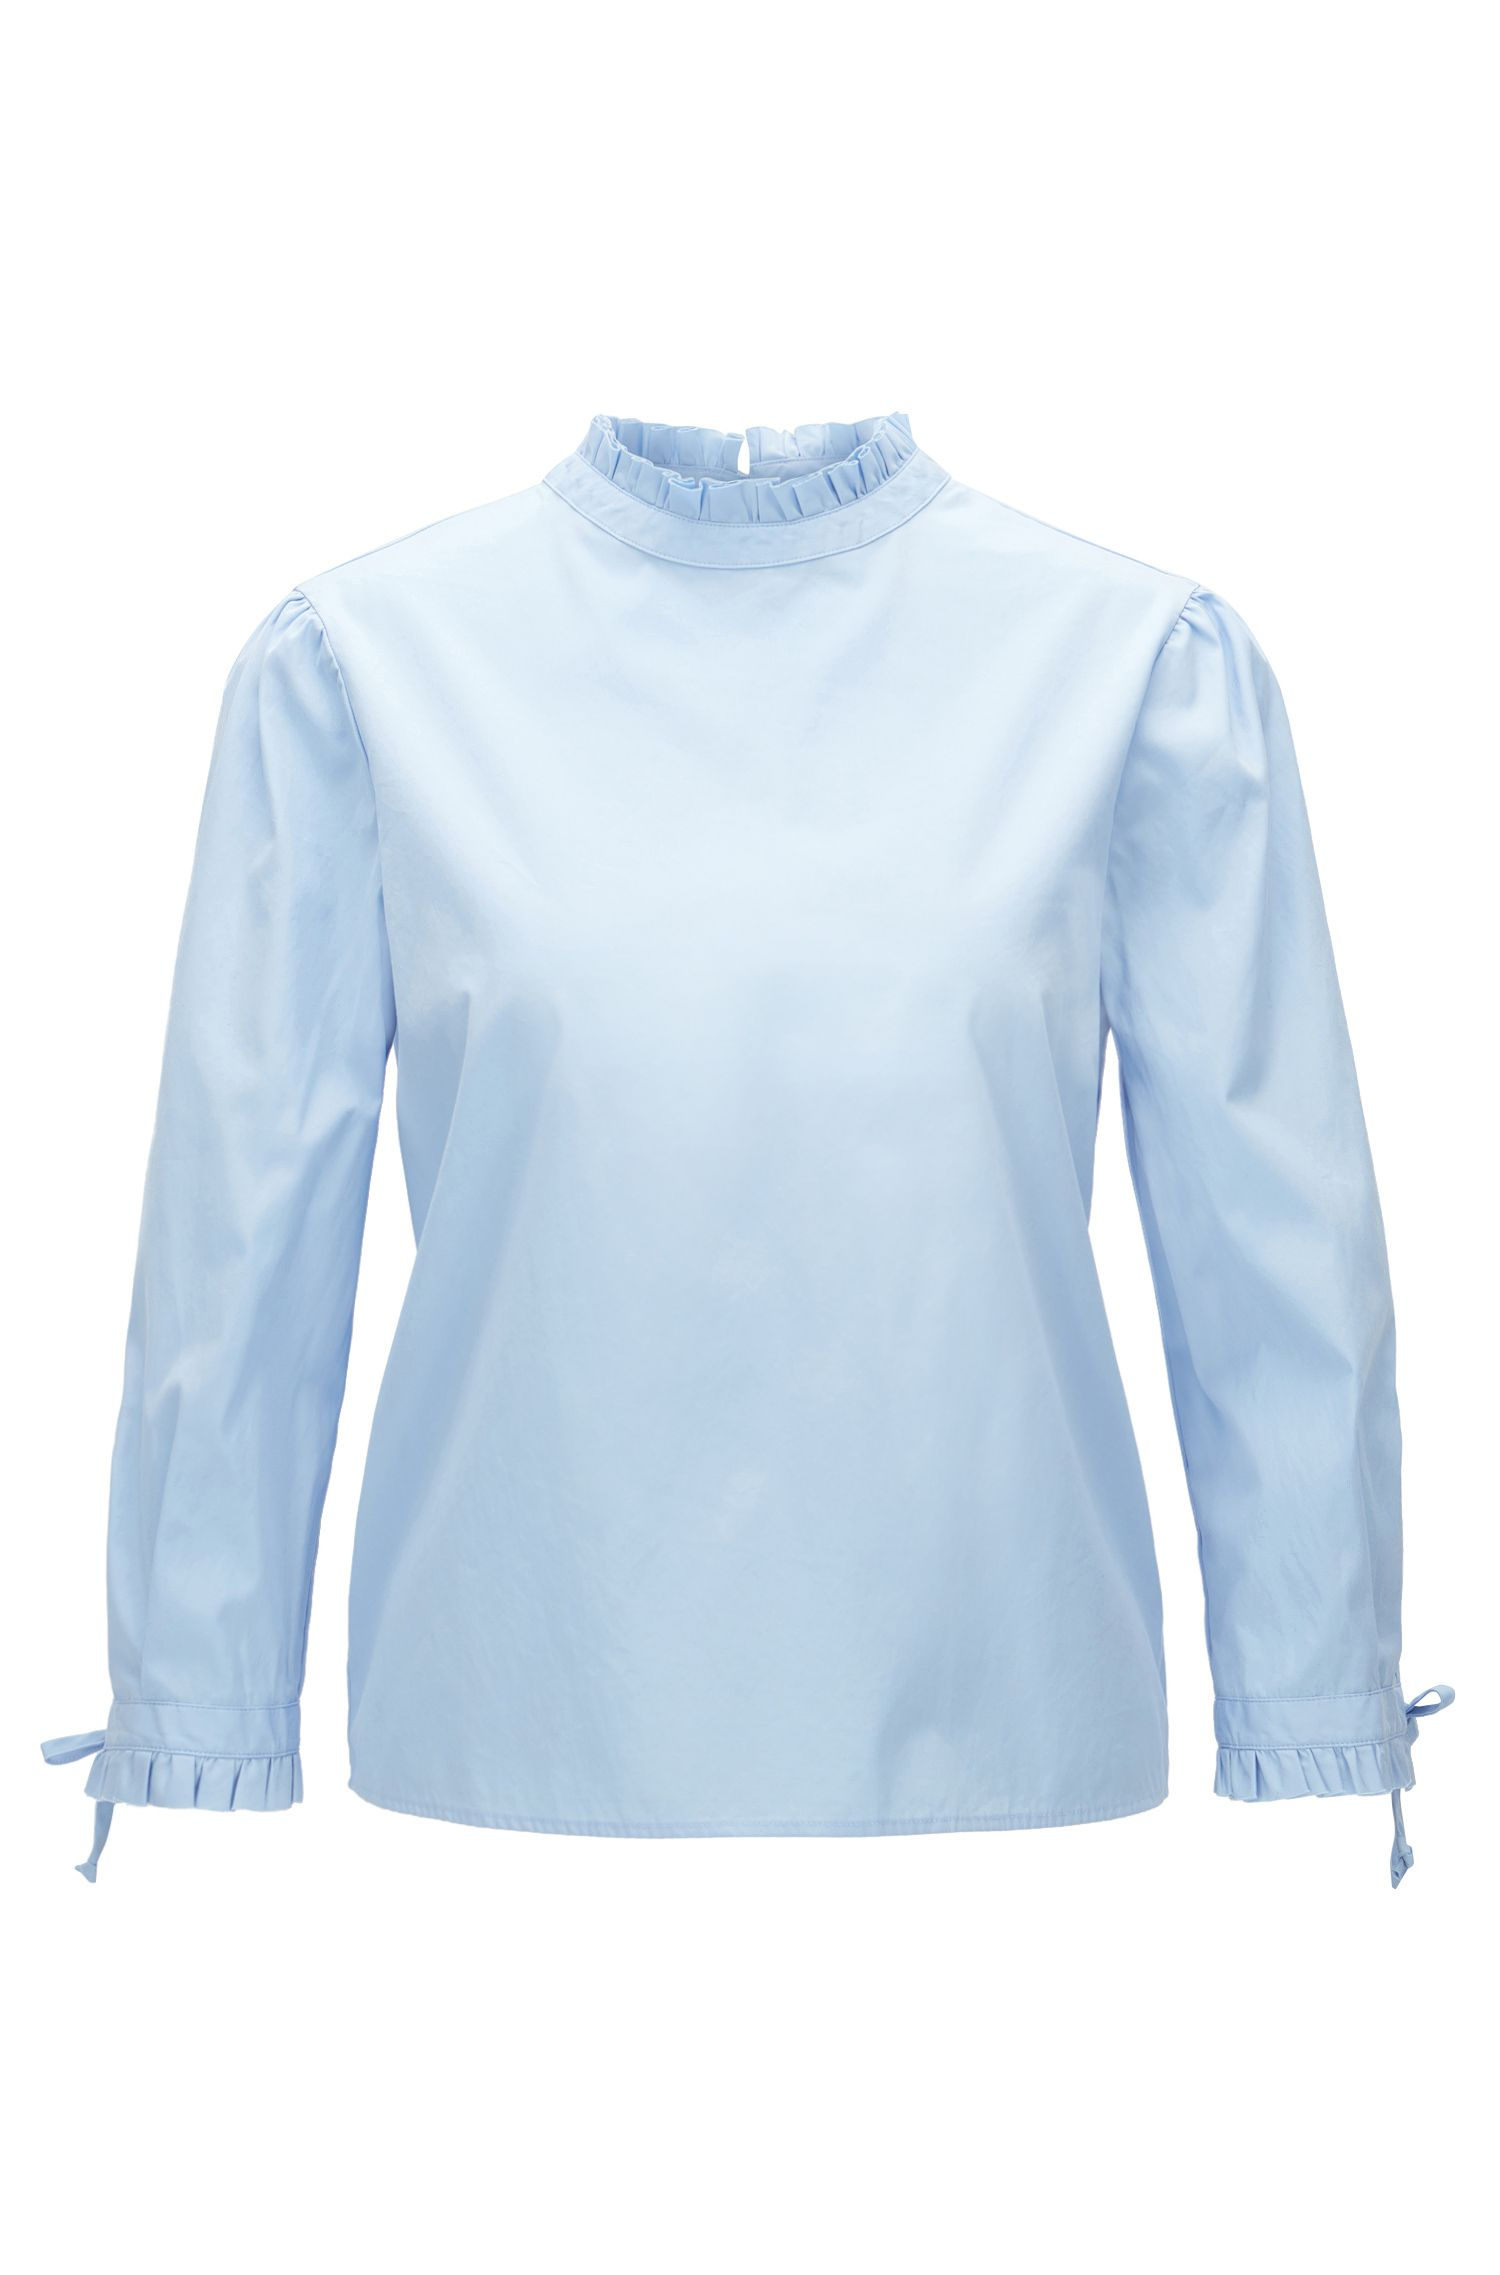 Regular-fit cotton blouse with pleated collar and cuffs